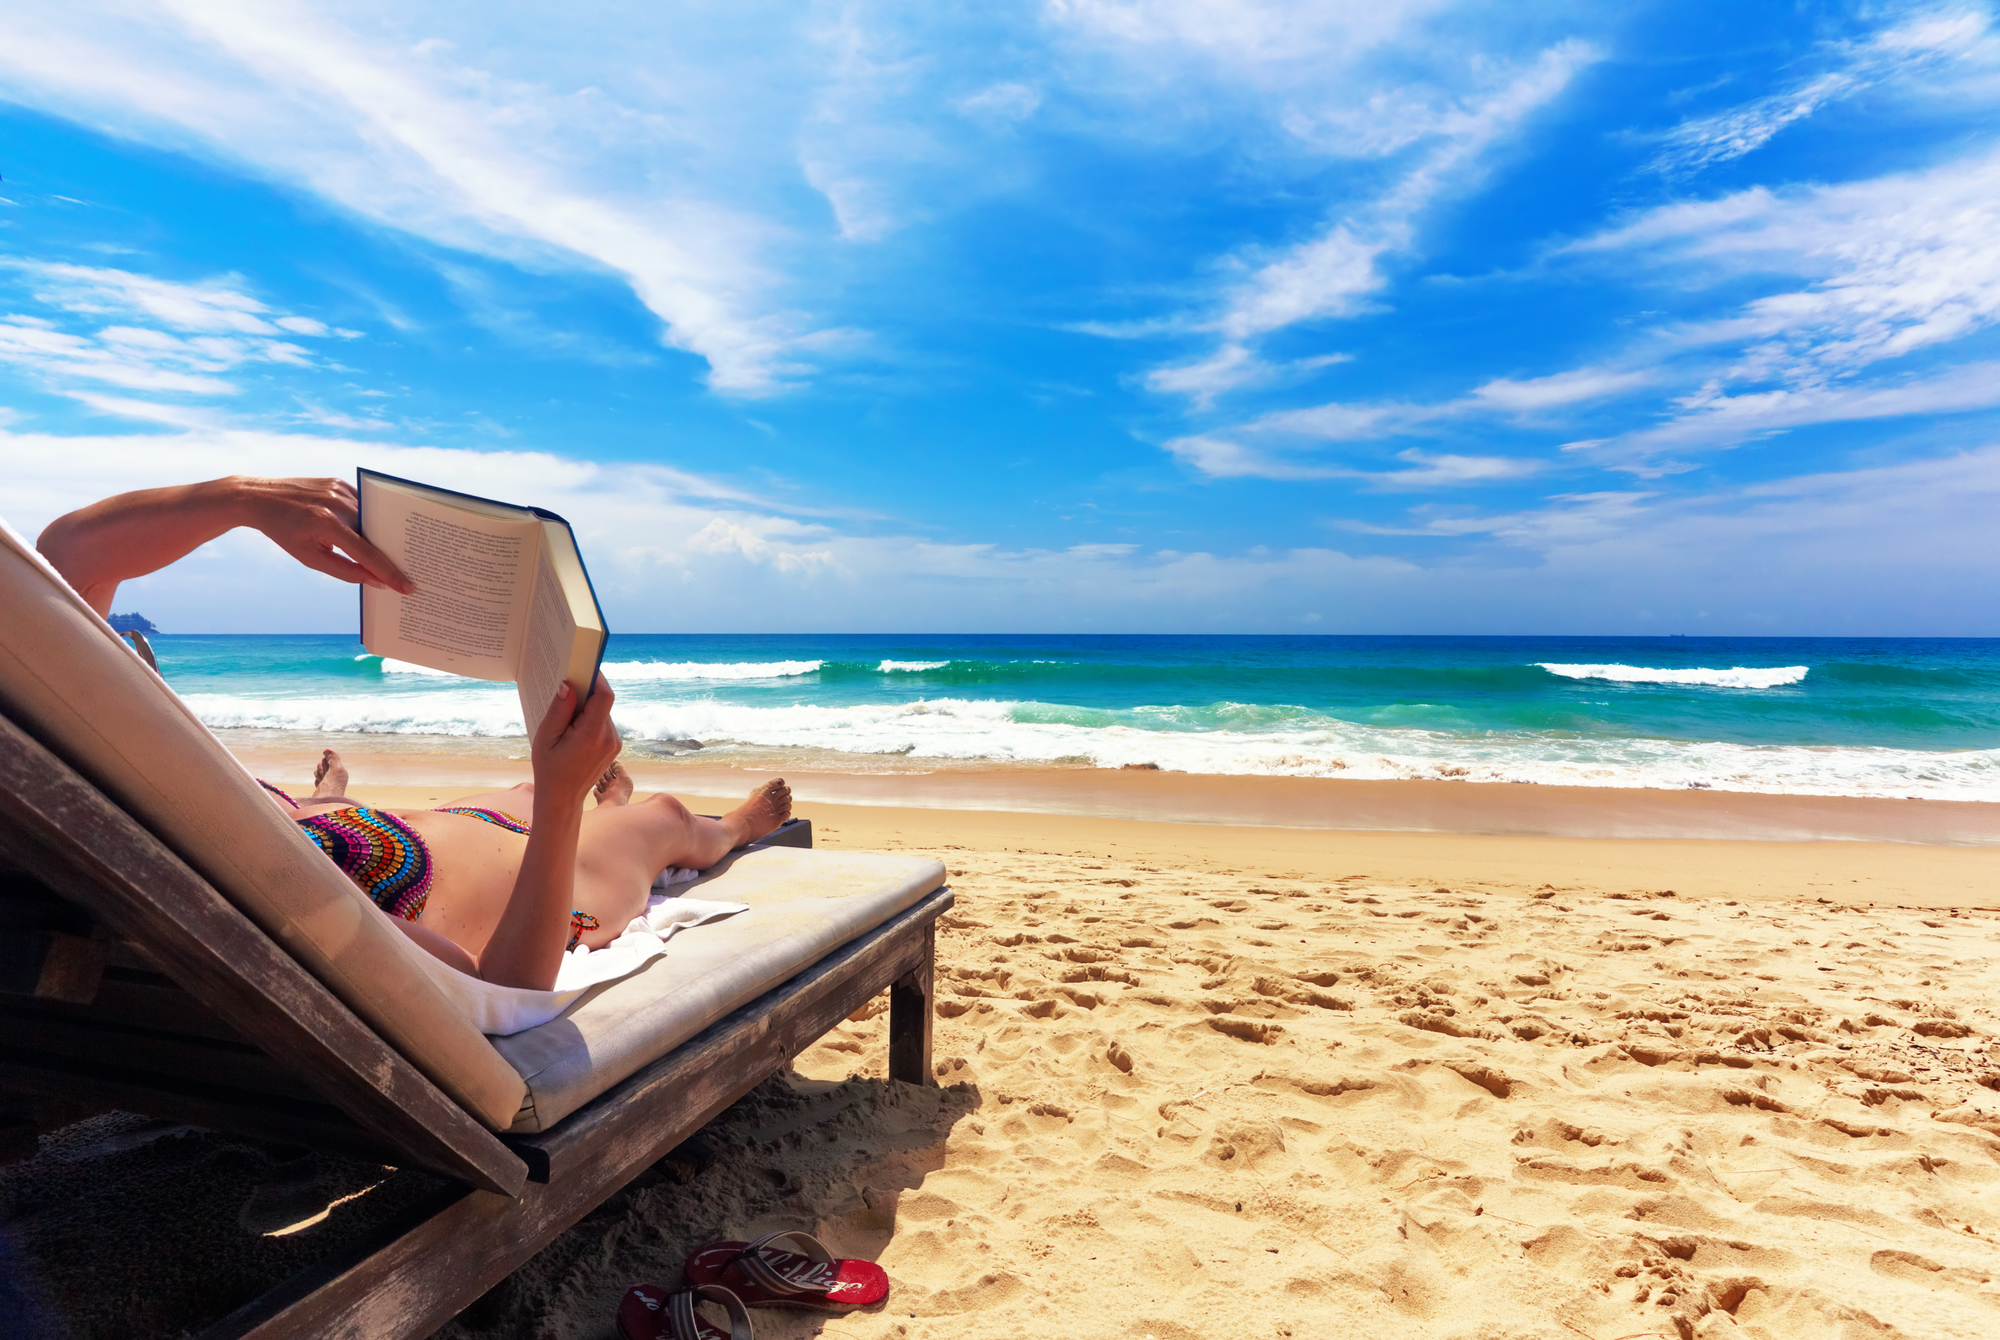 7 Tips to Have a Better, More Relaxing Summer Vacation | HYDAWAYHYDAWAY